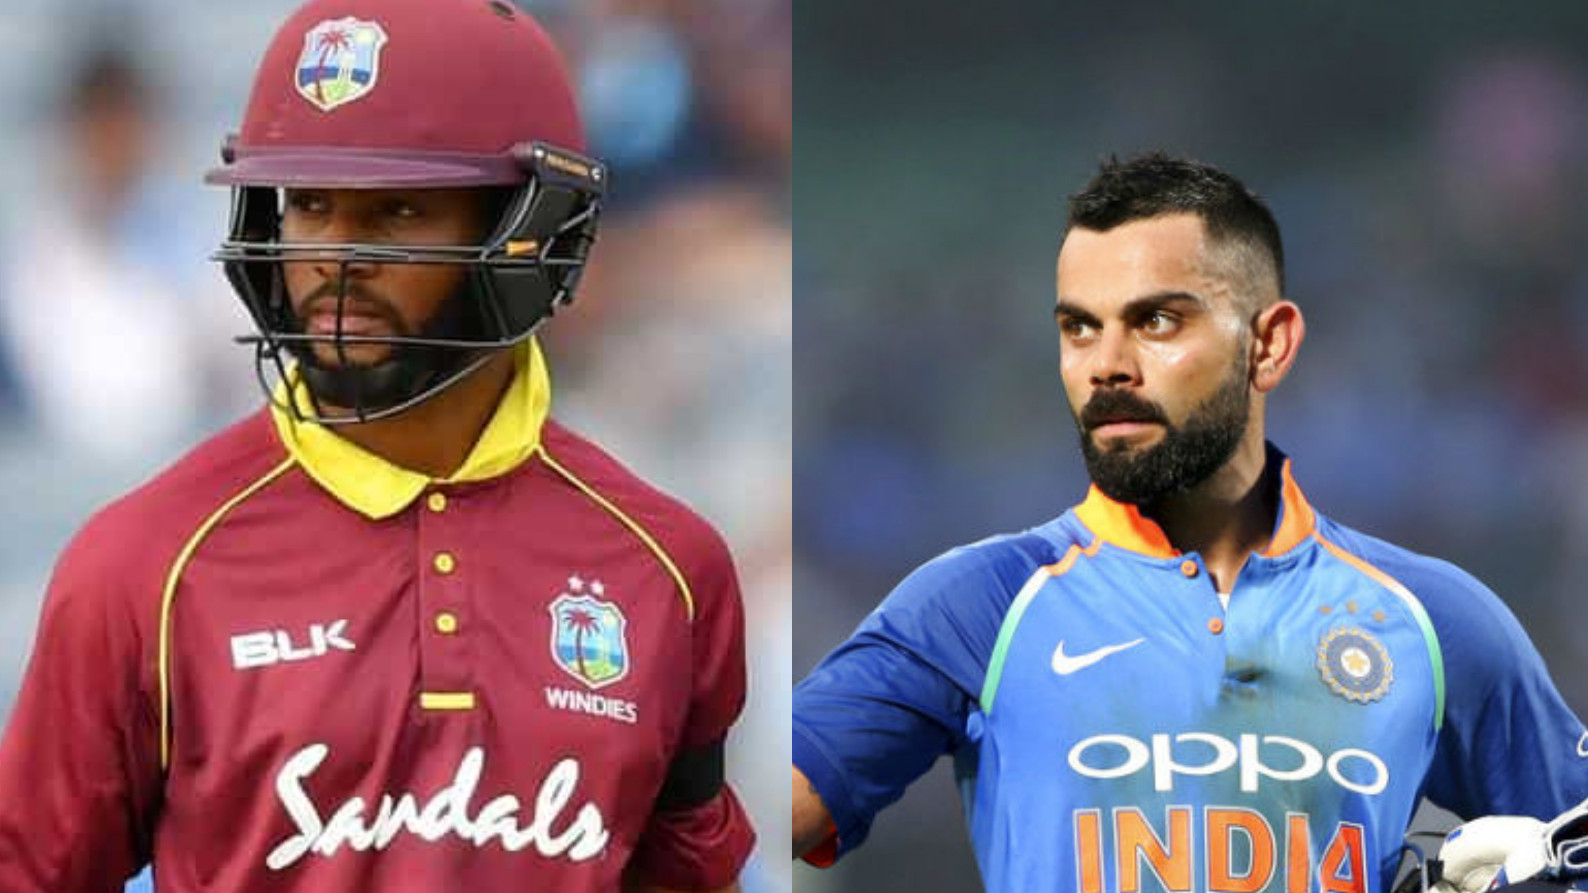 IND v WI 2018: 3rd ODI – Shai Hope's 95 triumphs Virat Kohli's 107 as Windies win by 43 runs; series tied 1-1